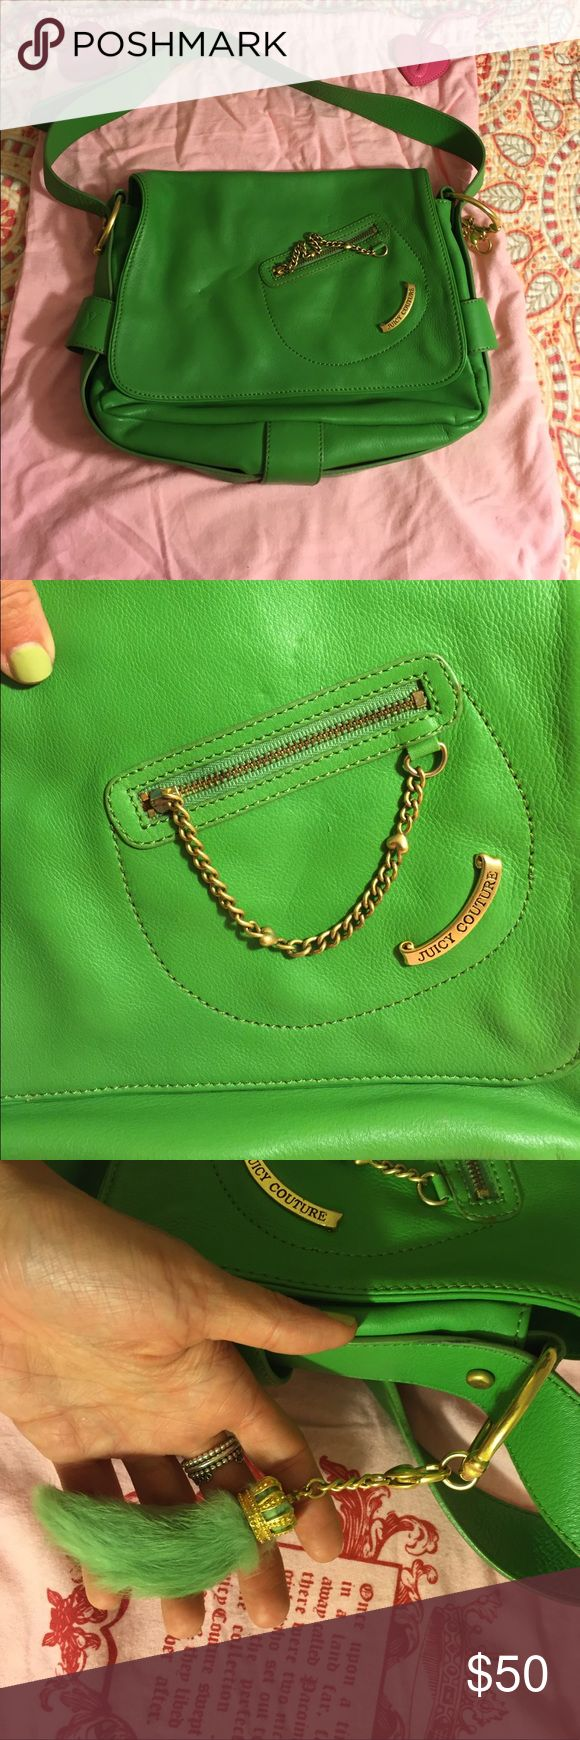 Juicy couture green leather bag, comes with duster Juicy couture green leather bag, comes with duster. Super cute pockets inside. Lucky rabbit foot charm. Juicy Couture Bags